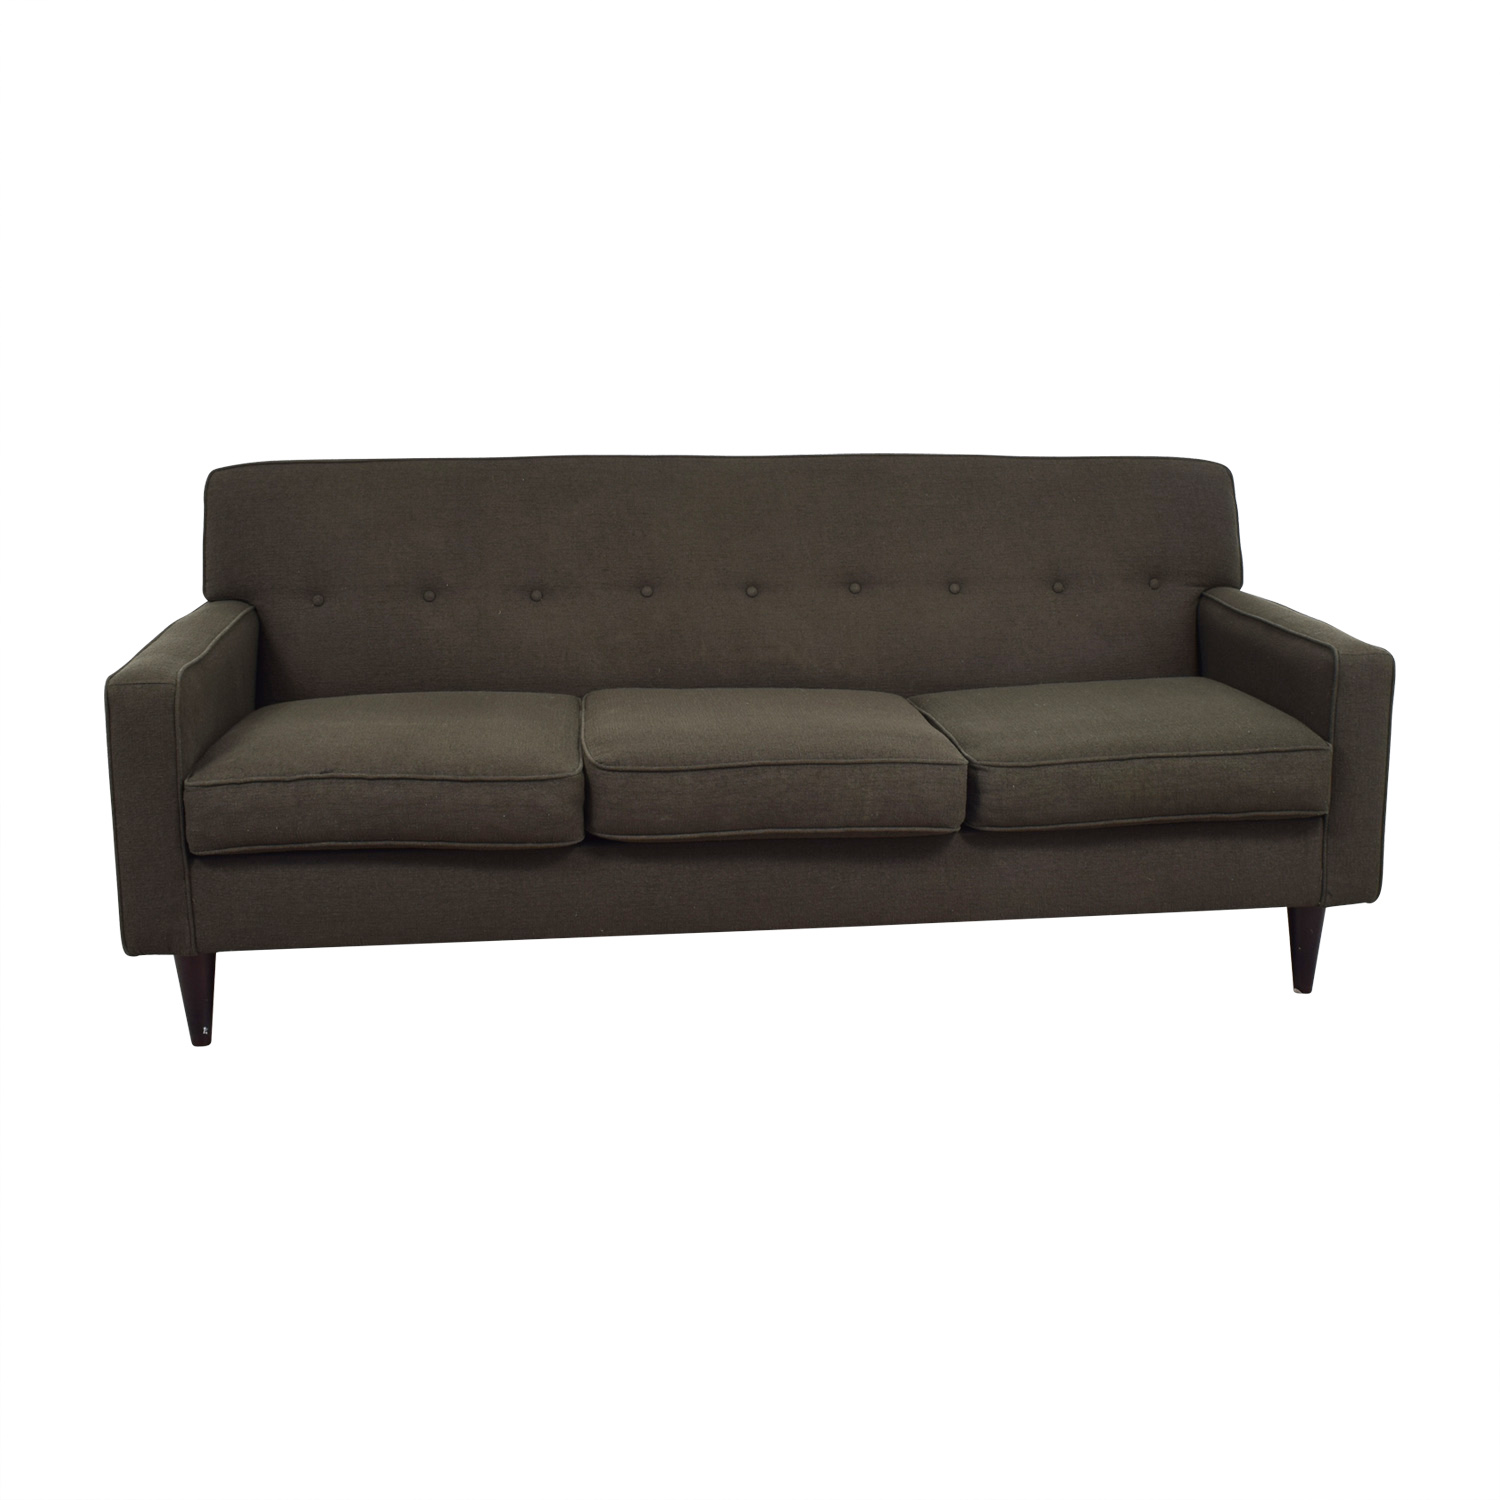 Max Home Semi-Tufted Three-Cushion Grey Sofa Max Home